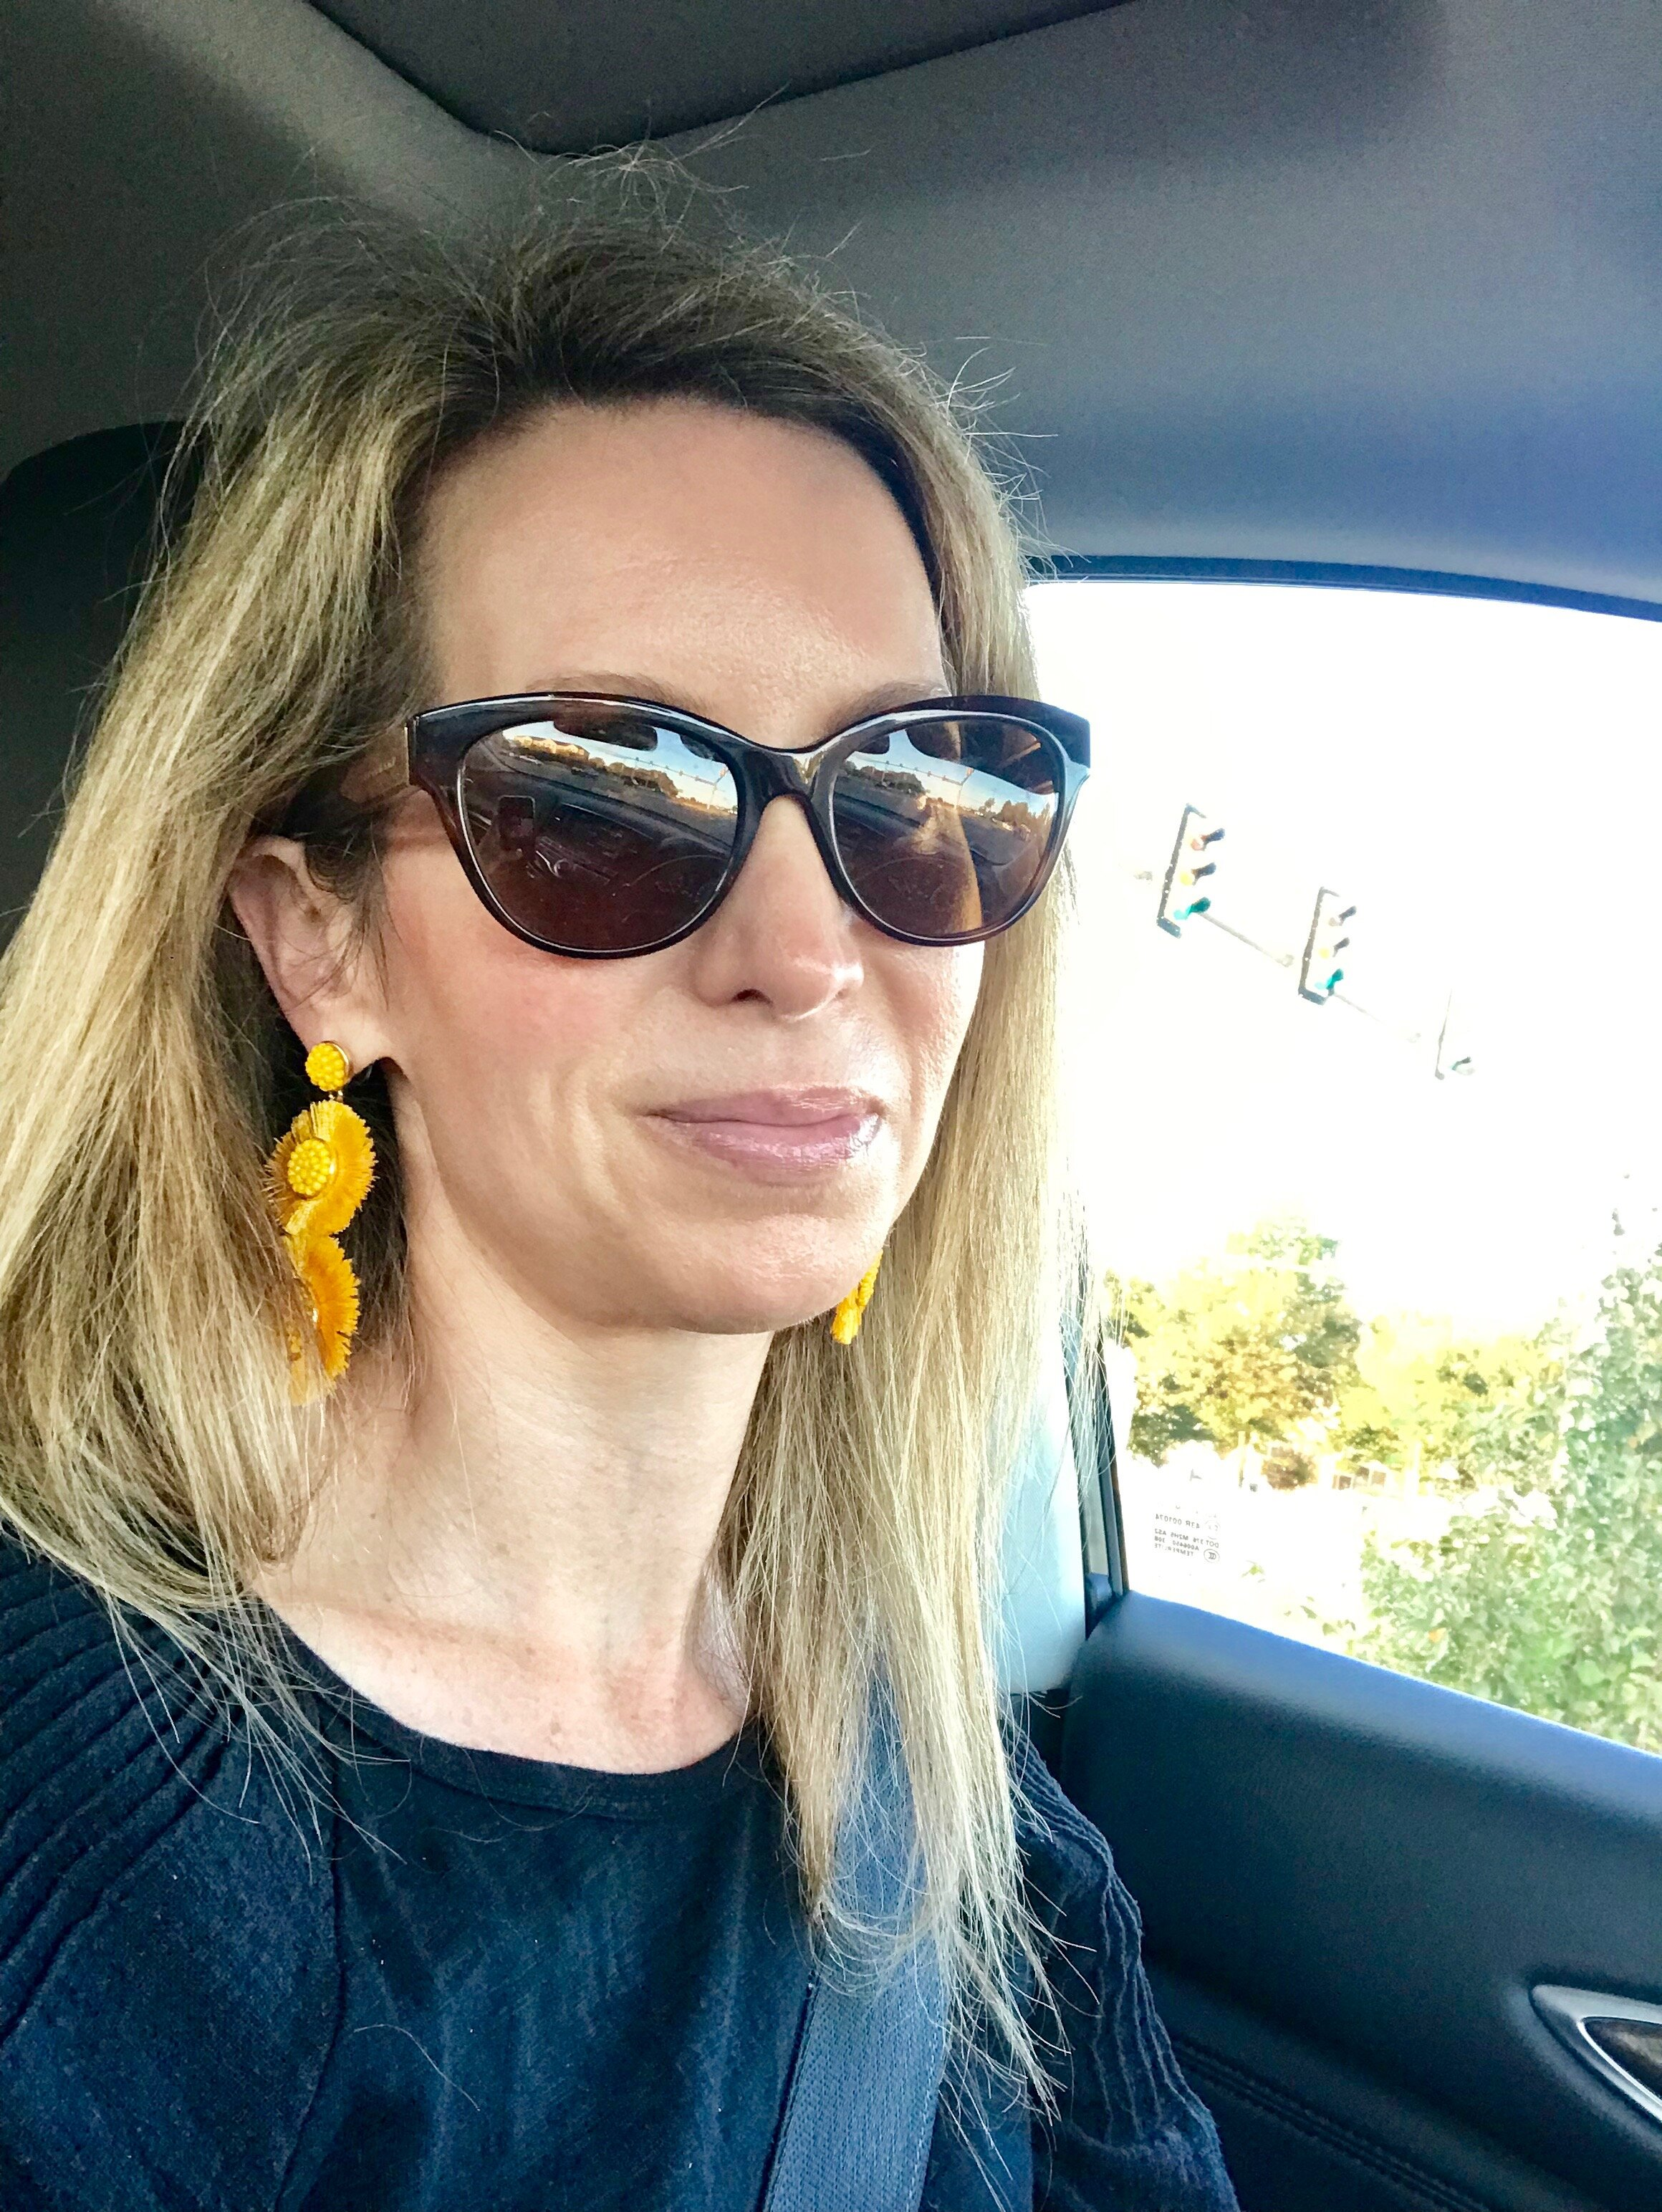 Earrings of the day, for a pop of color